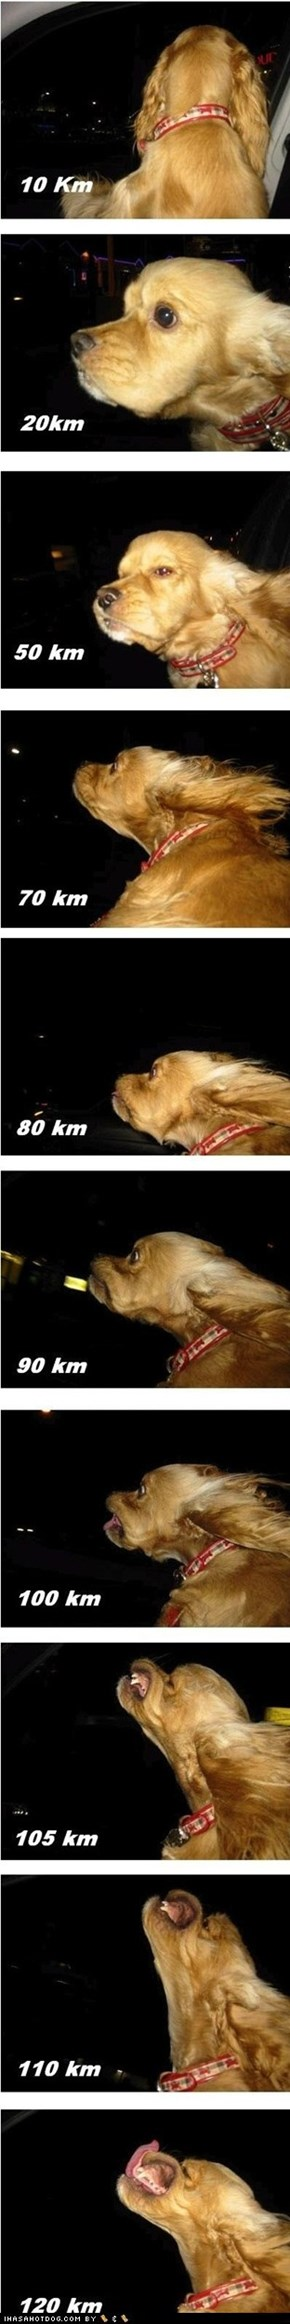 Dog Vs Speed